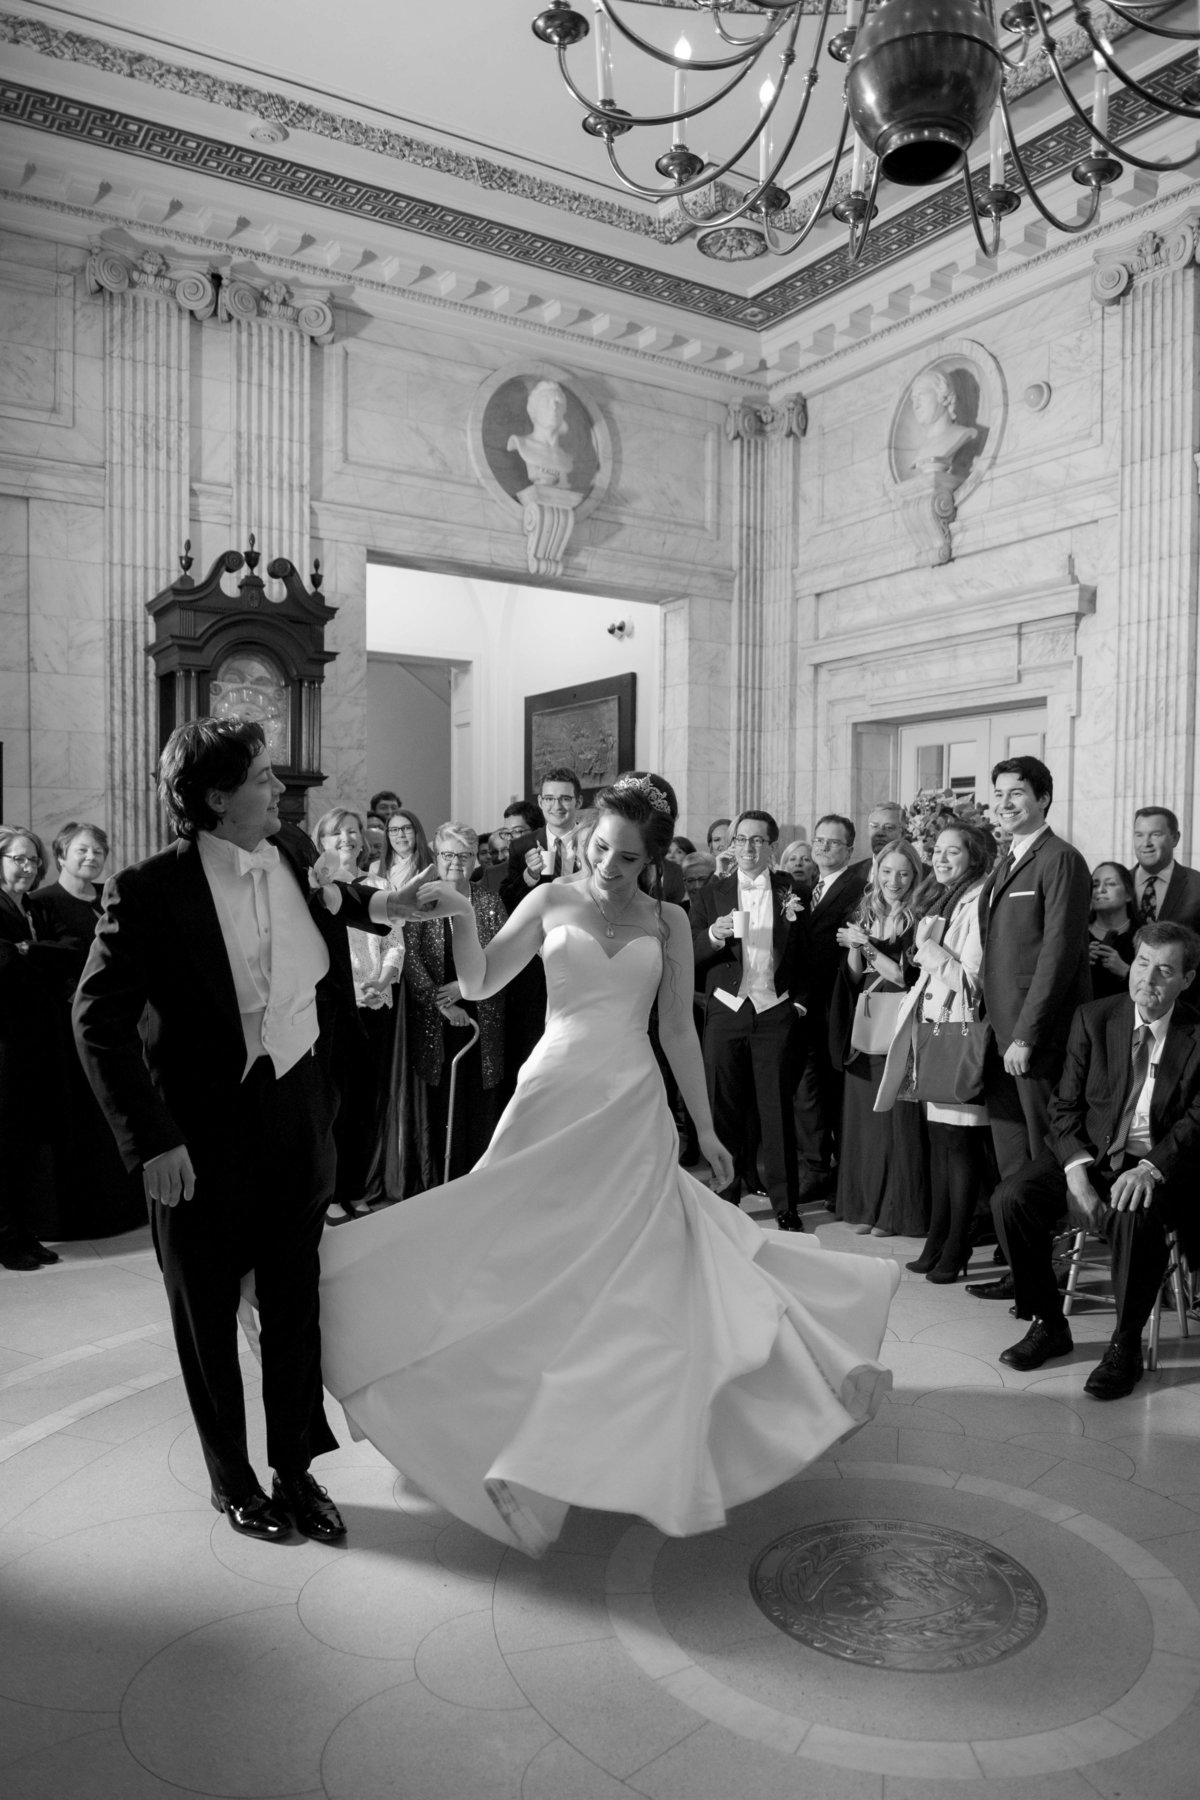 DAR Wedding by Washington DC Wedding Photographer, Erin Tetterton Photography